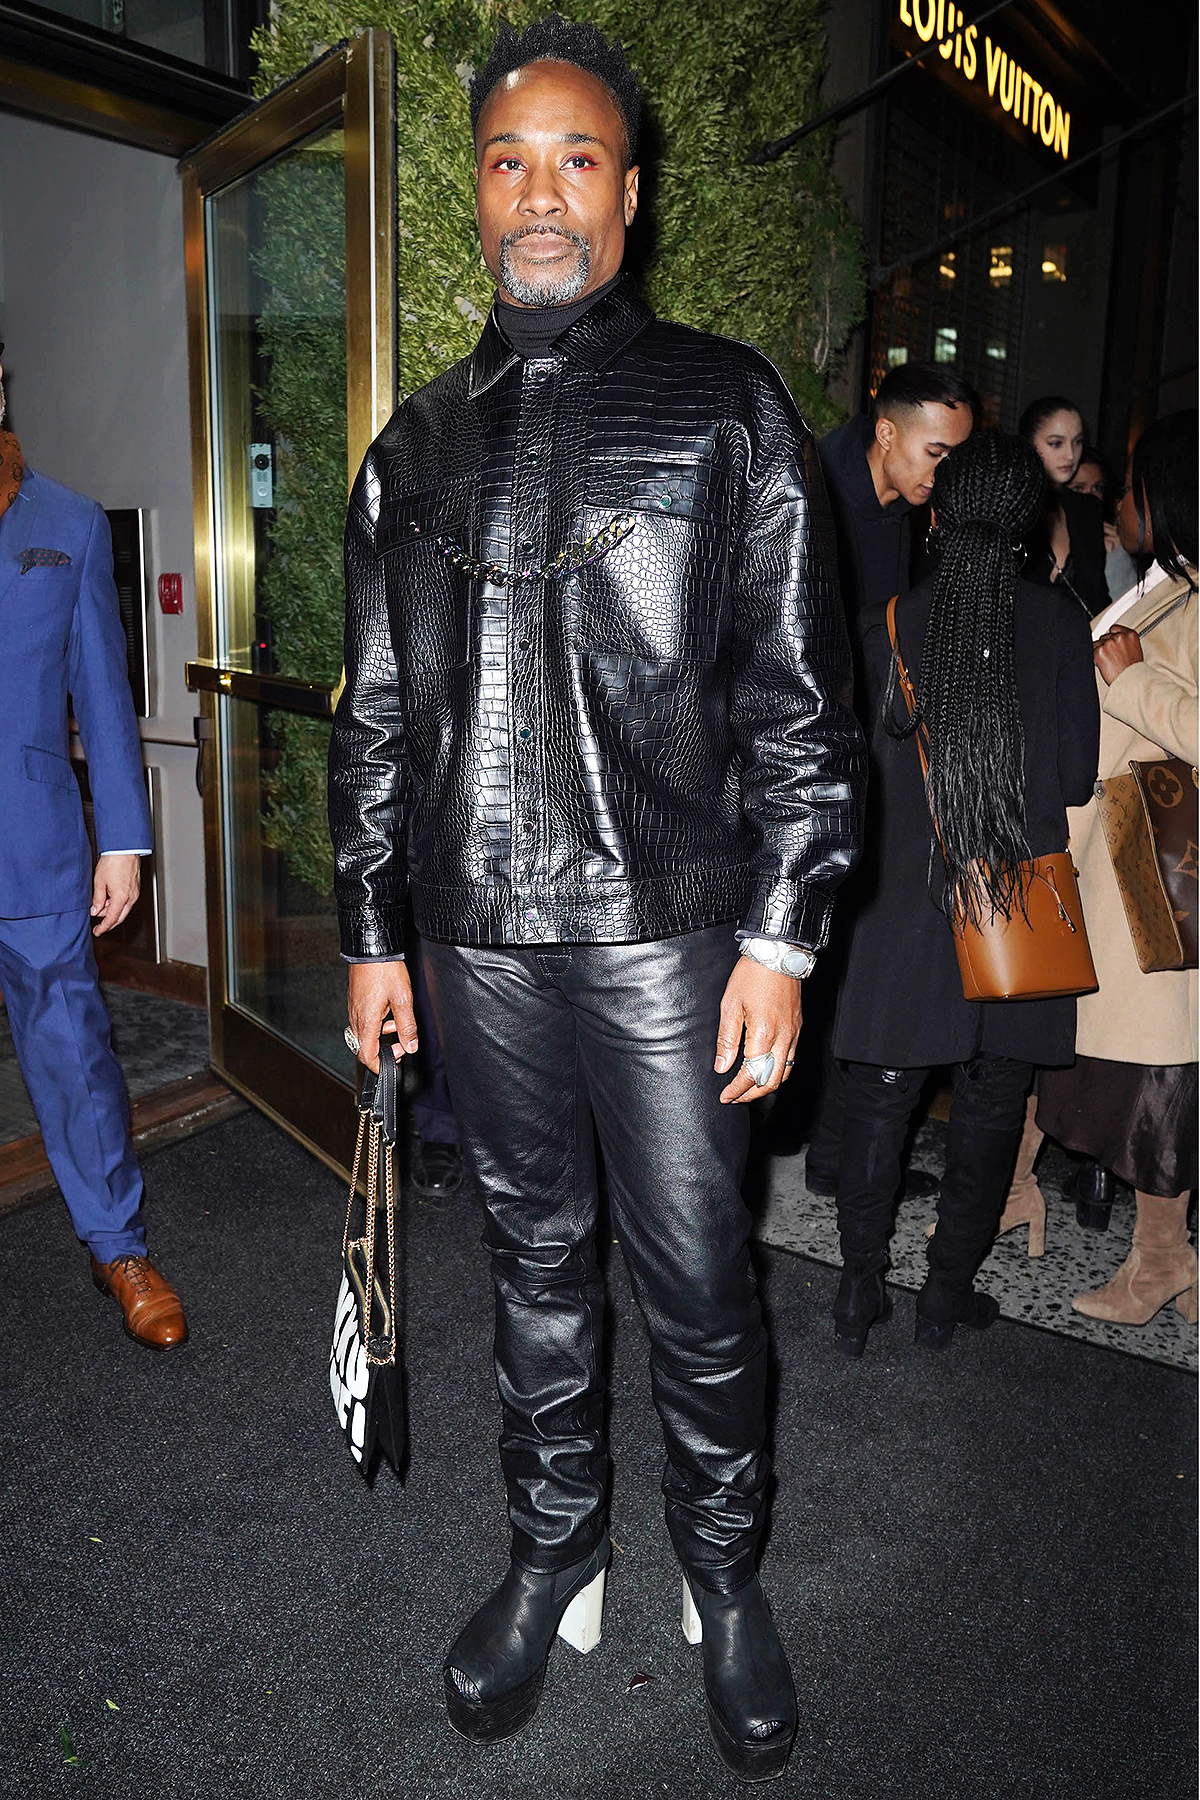 Billy Porter is seen on February 4, 2020 in New York City.